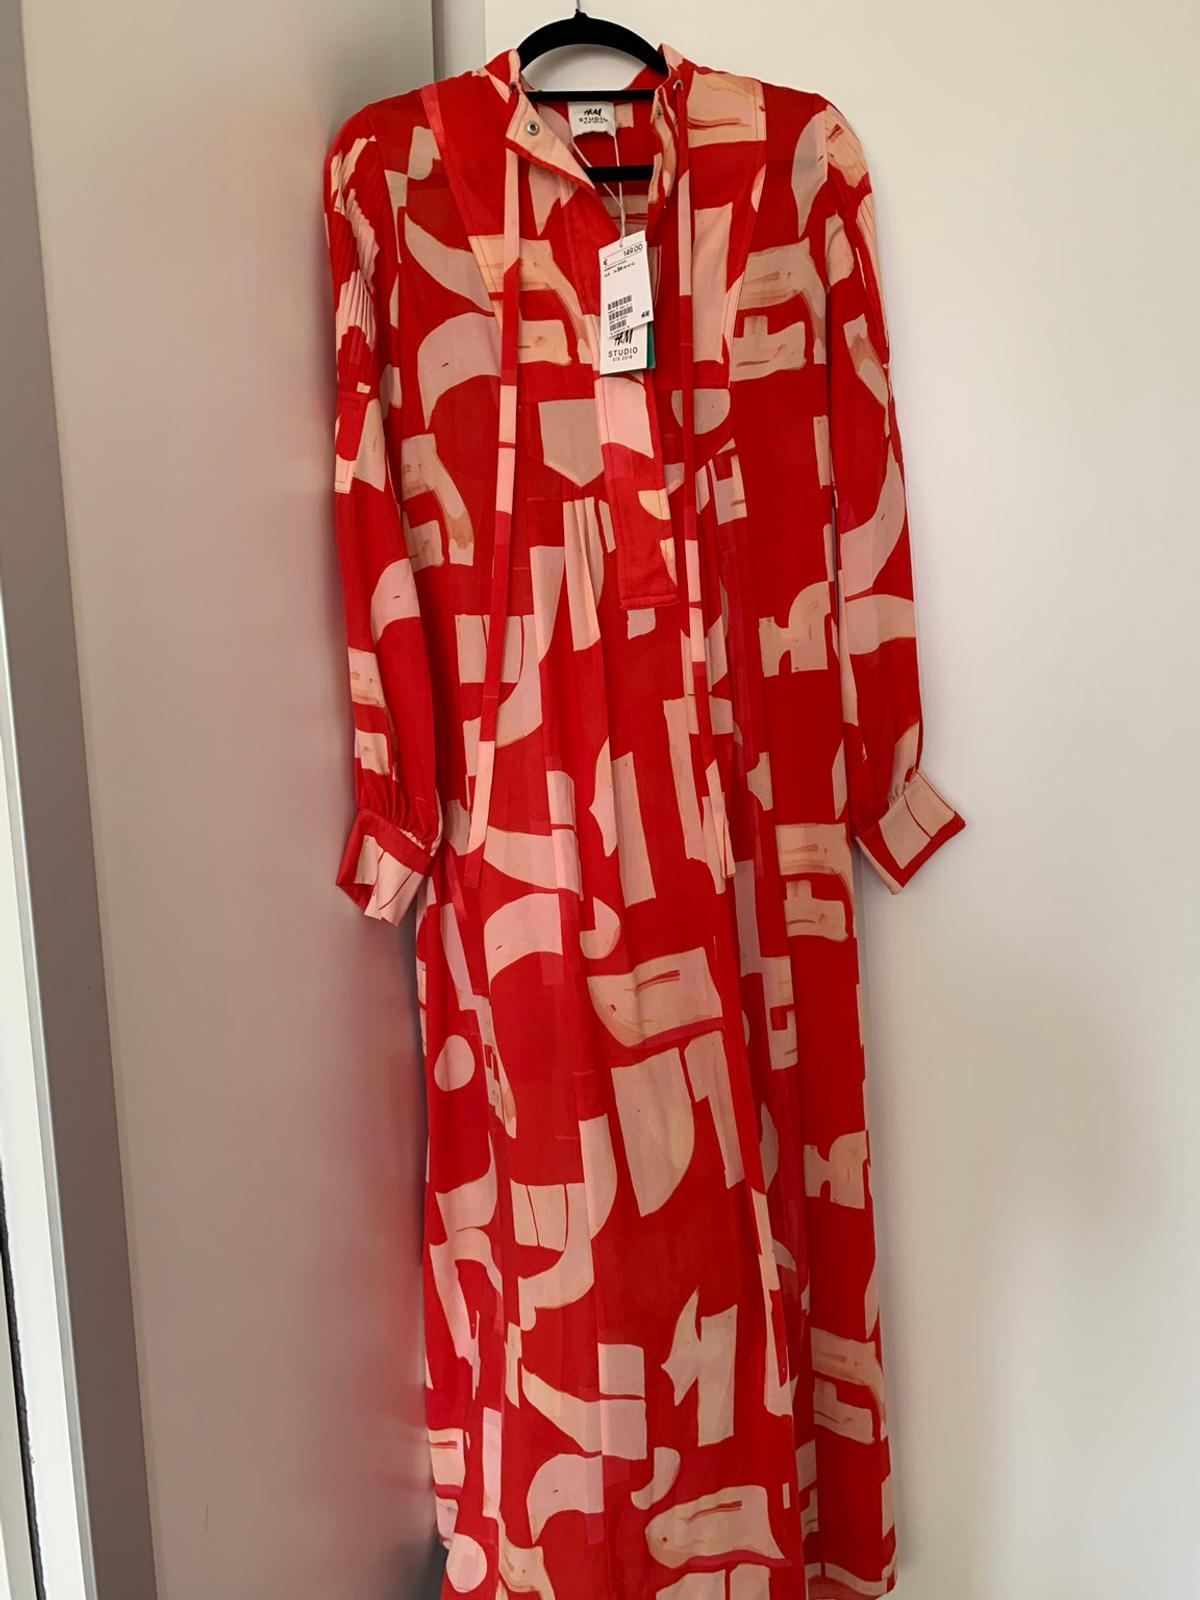 maxi kleid h&m studio in 1080 kg josefstadt for €60.00 for